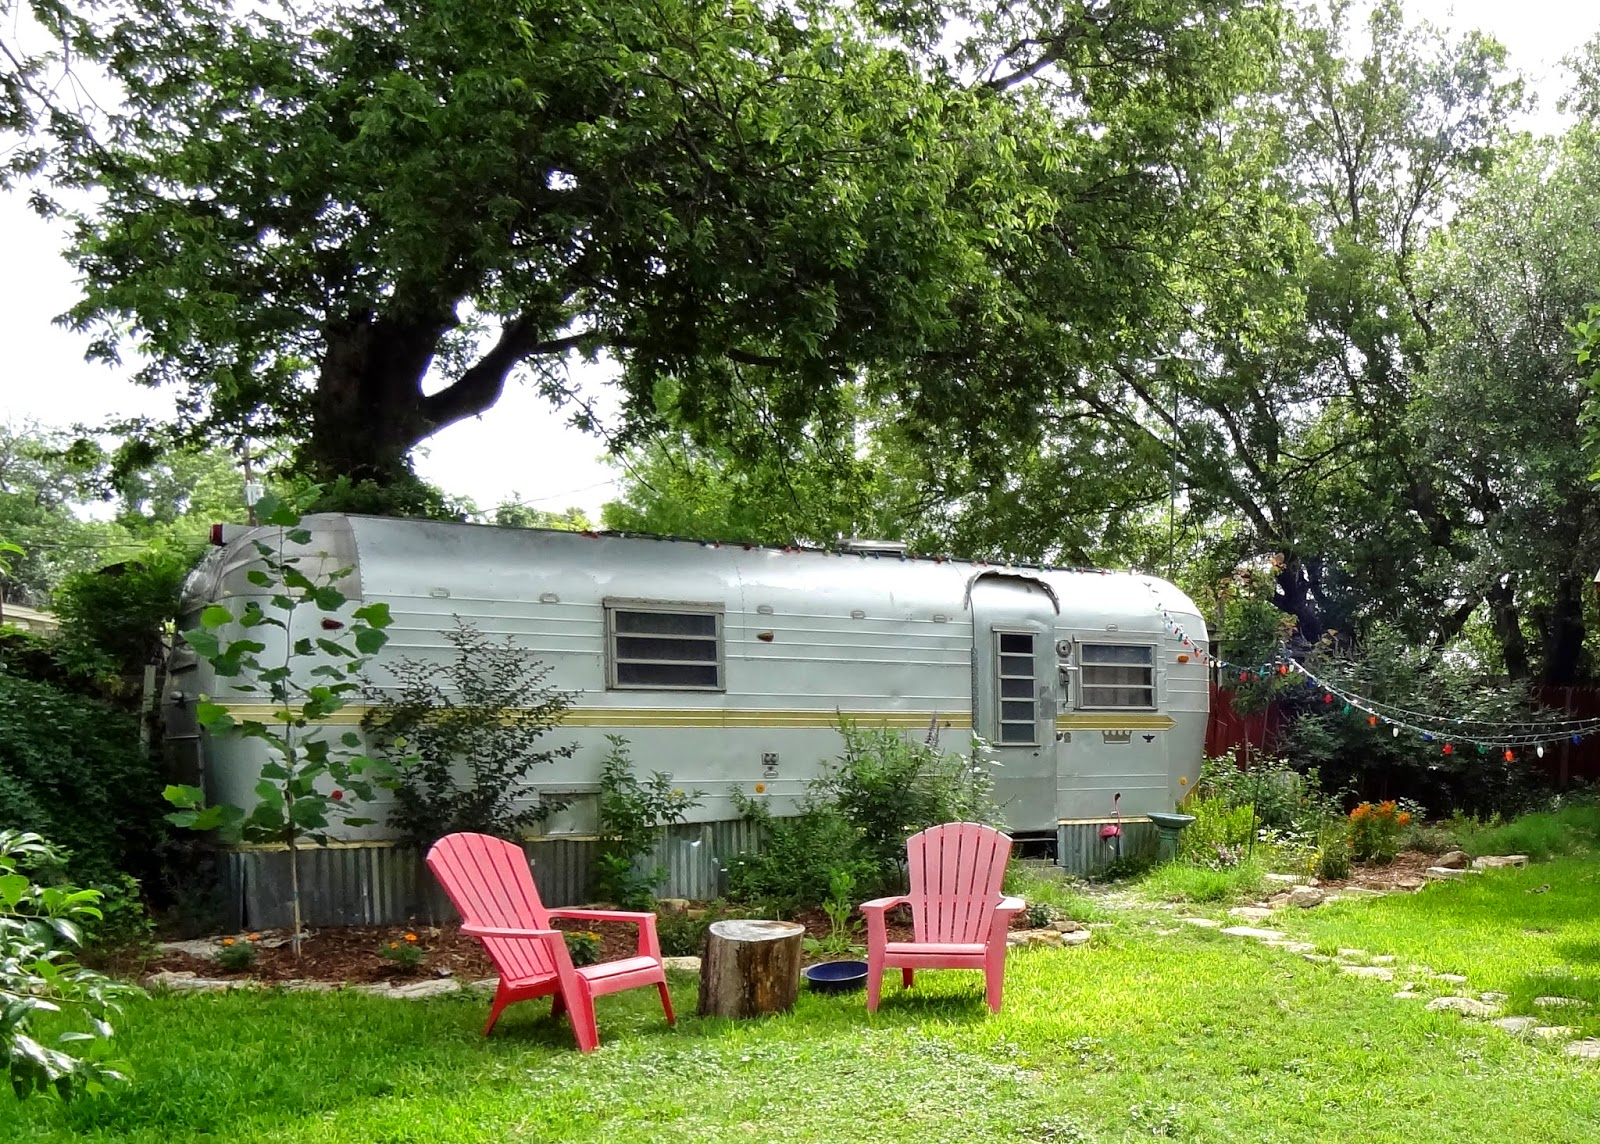 Vintage Airstream In Boho Garden